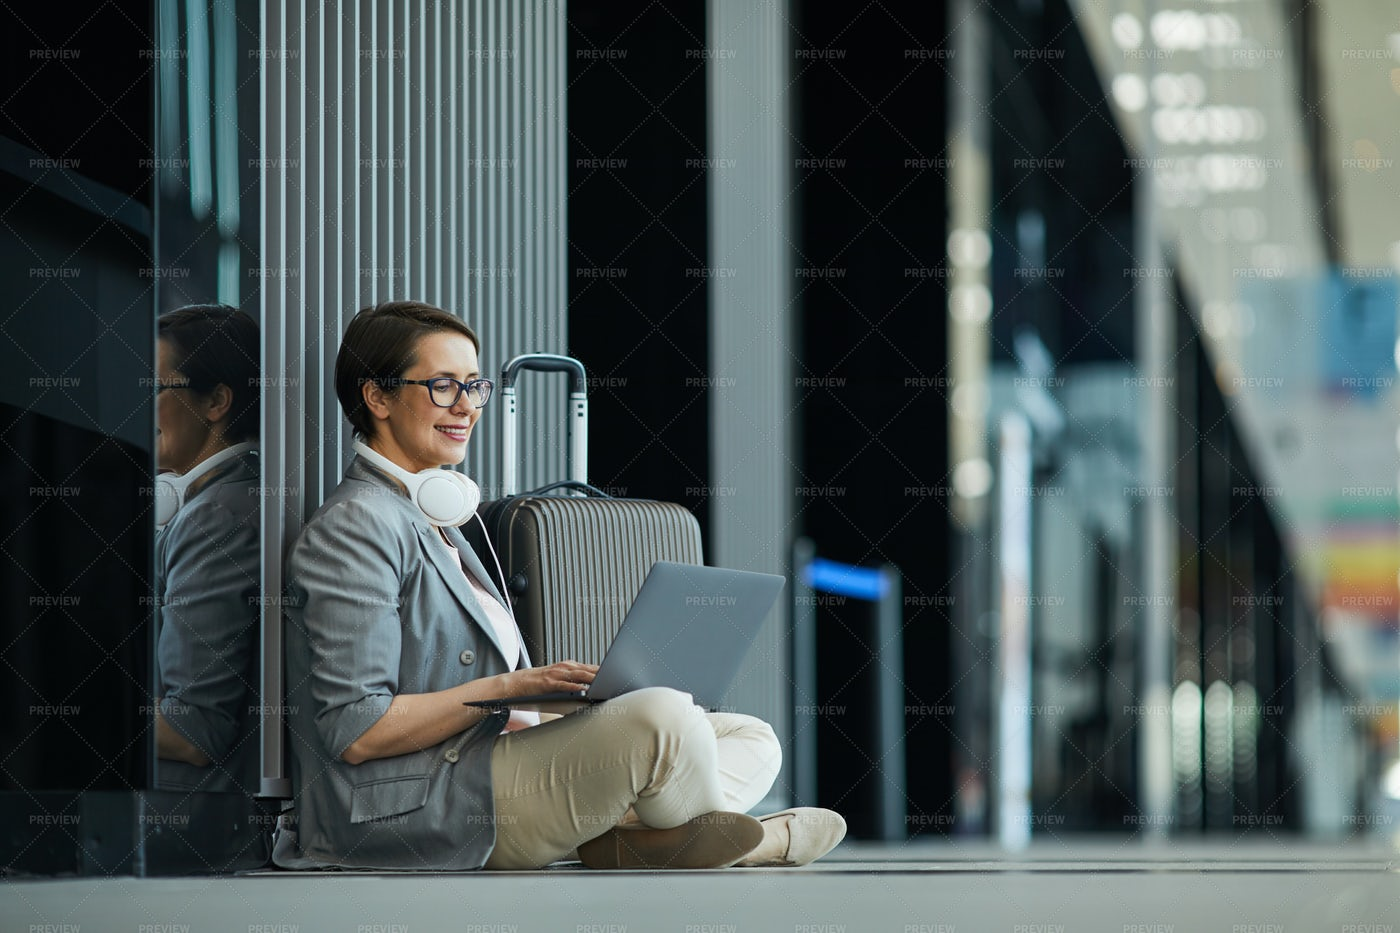 Smiling Lady Working In Airport: Stock Photos